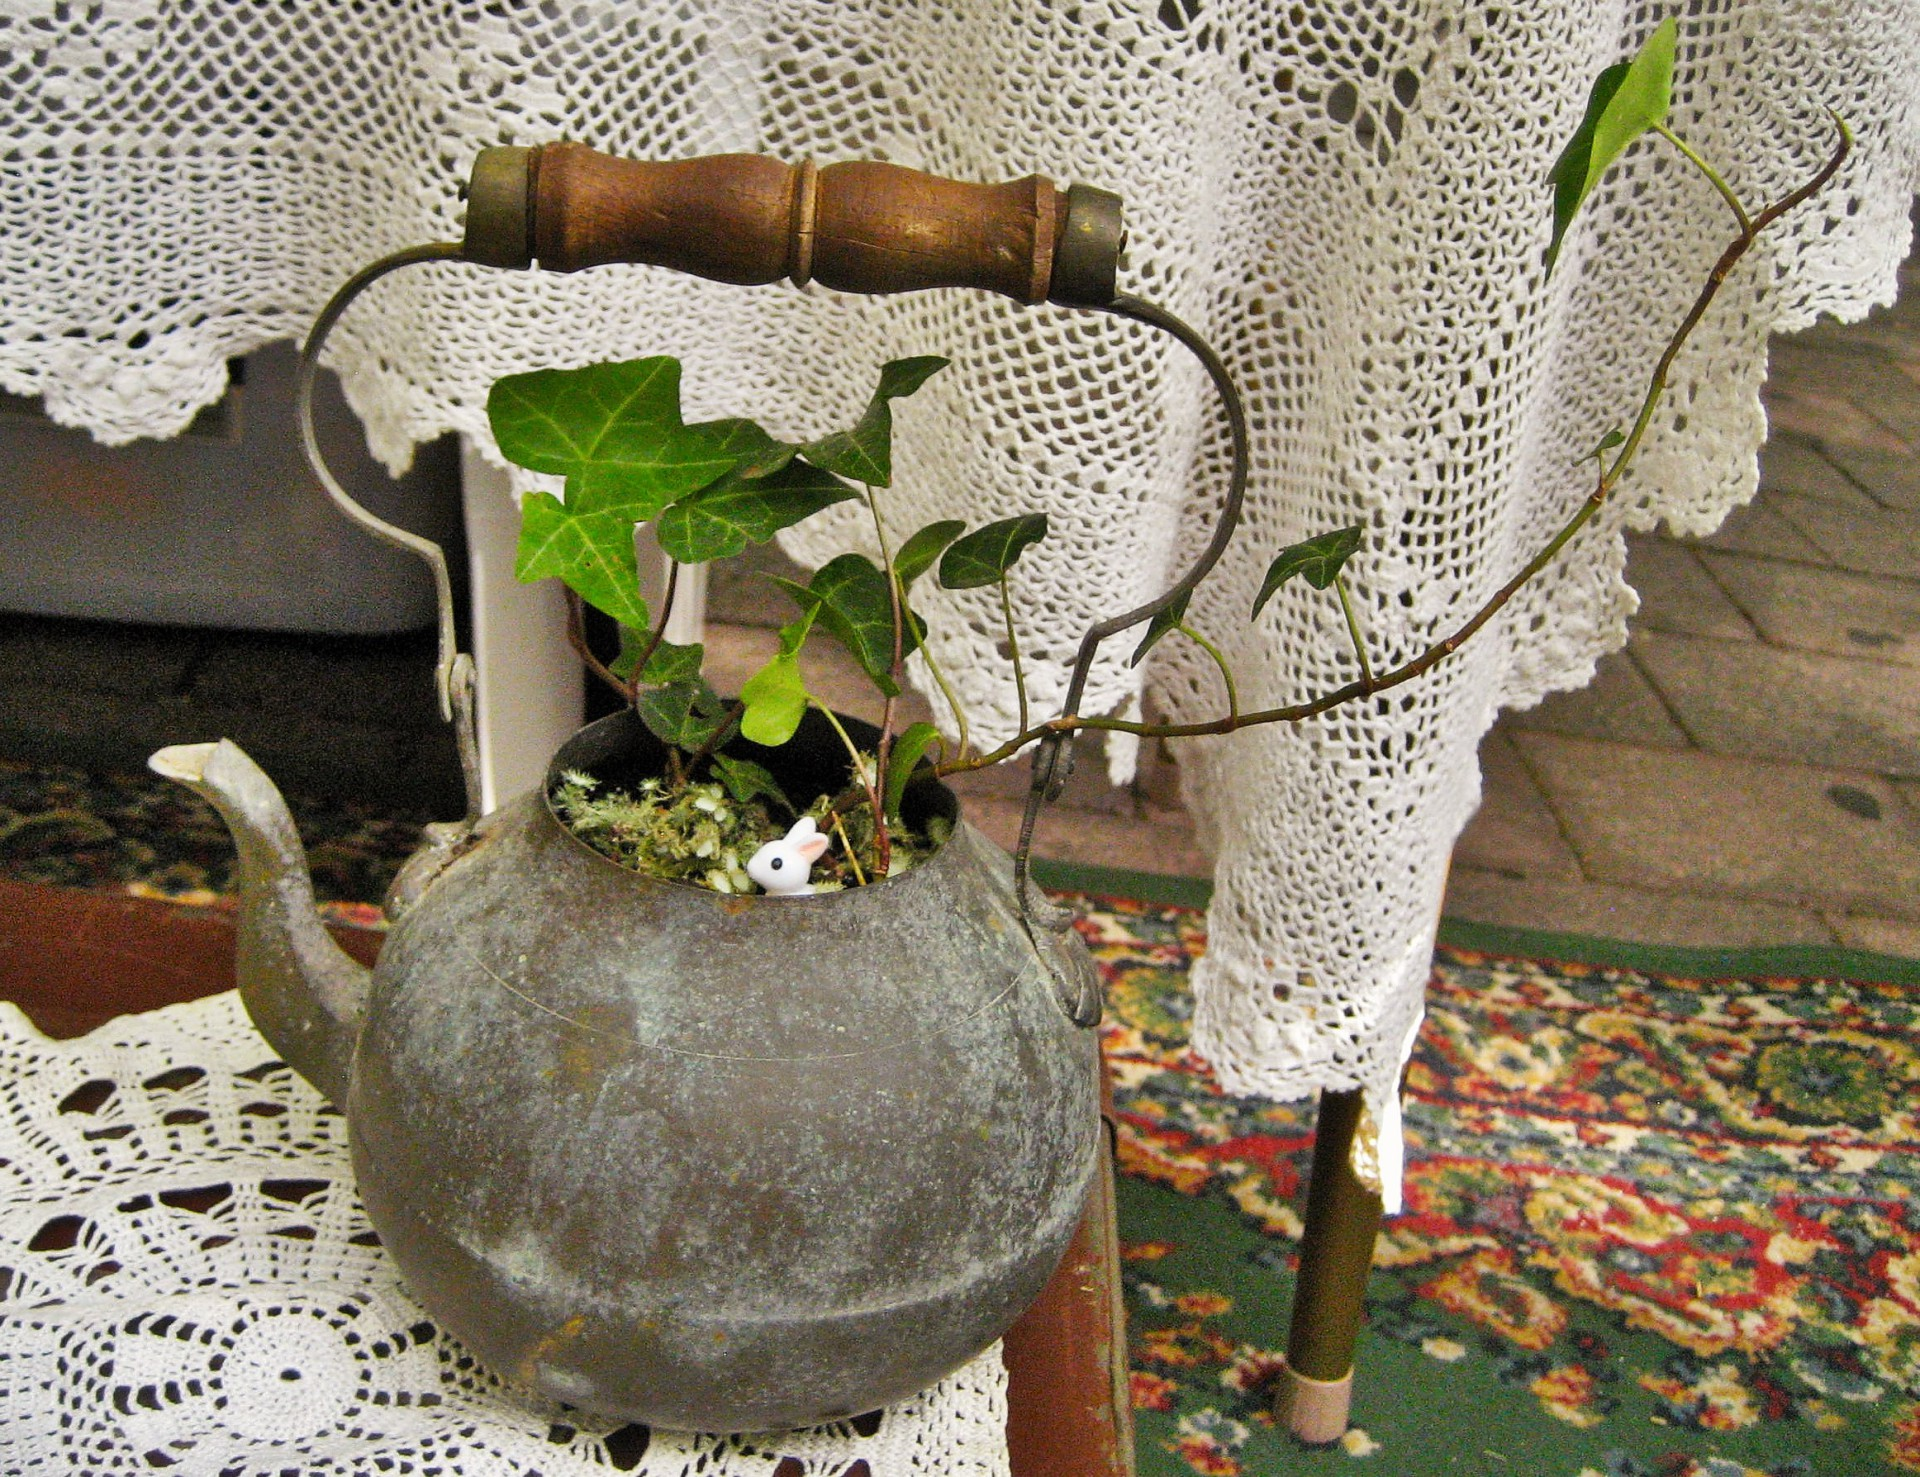 Easter Gift - Antique Kettle with Ivy